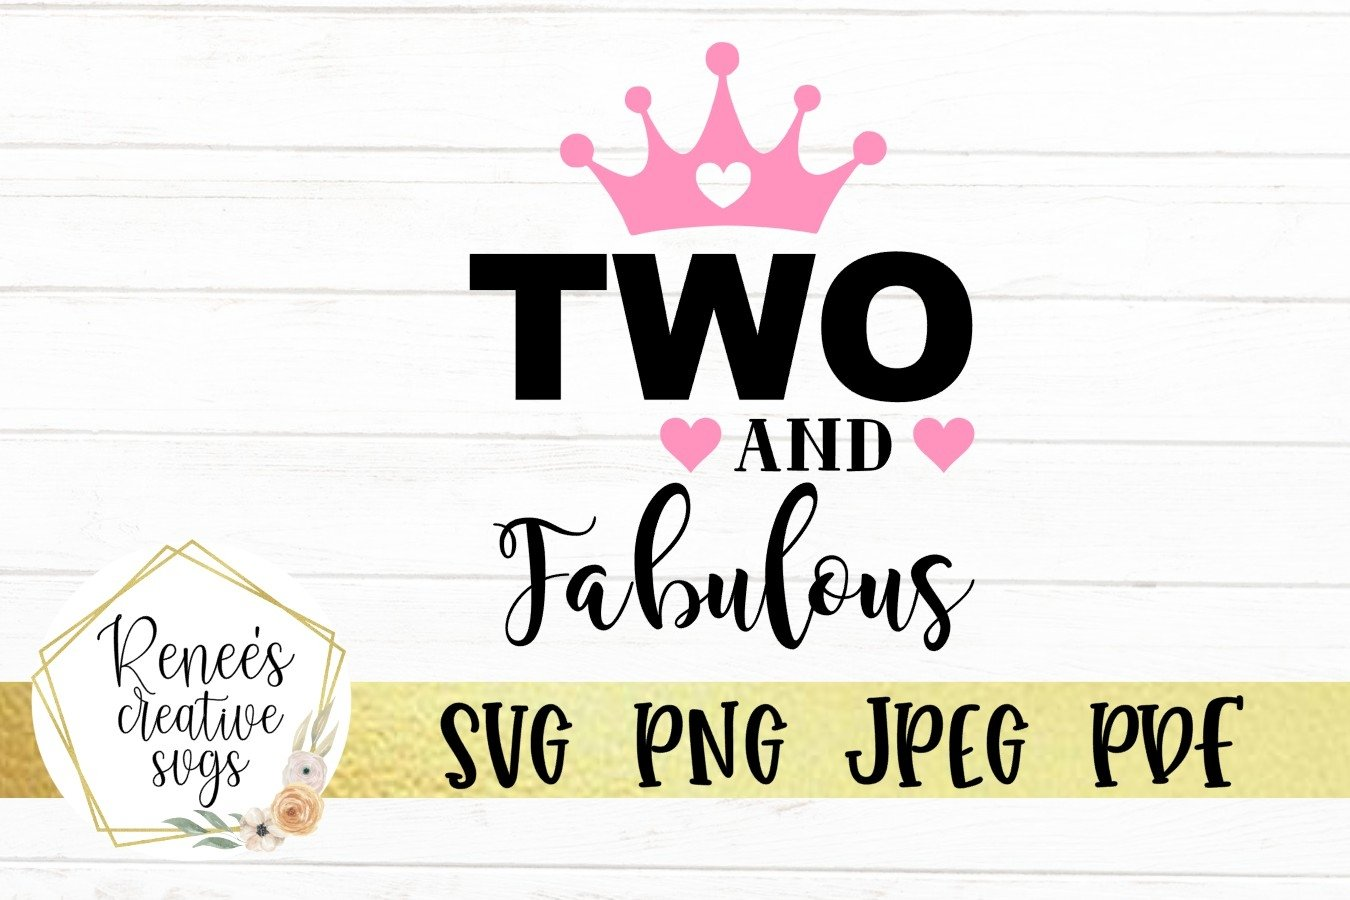 Two And Fabulous | Birthday | SVG Cutting File example image 3